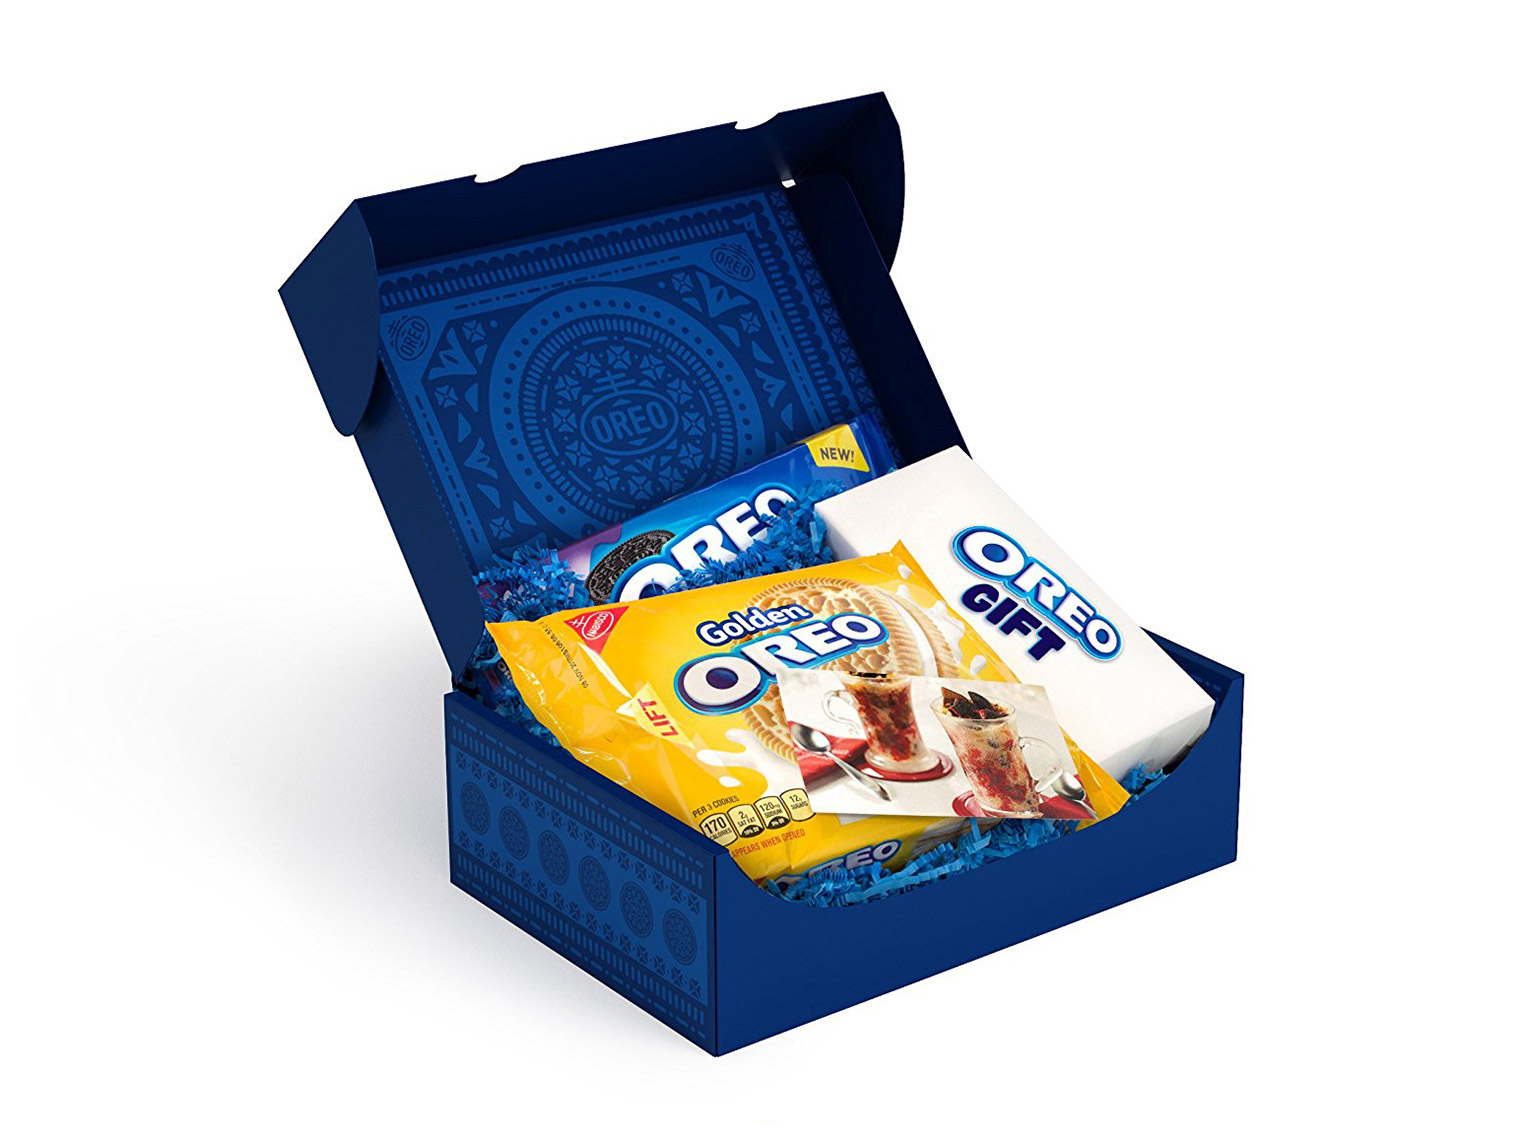 open box of oreo cookies in variety on